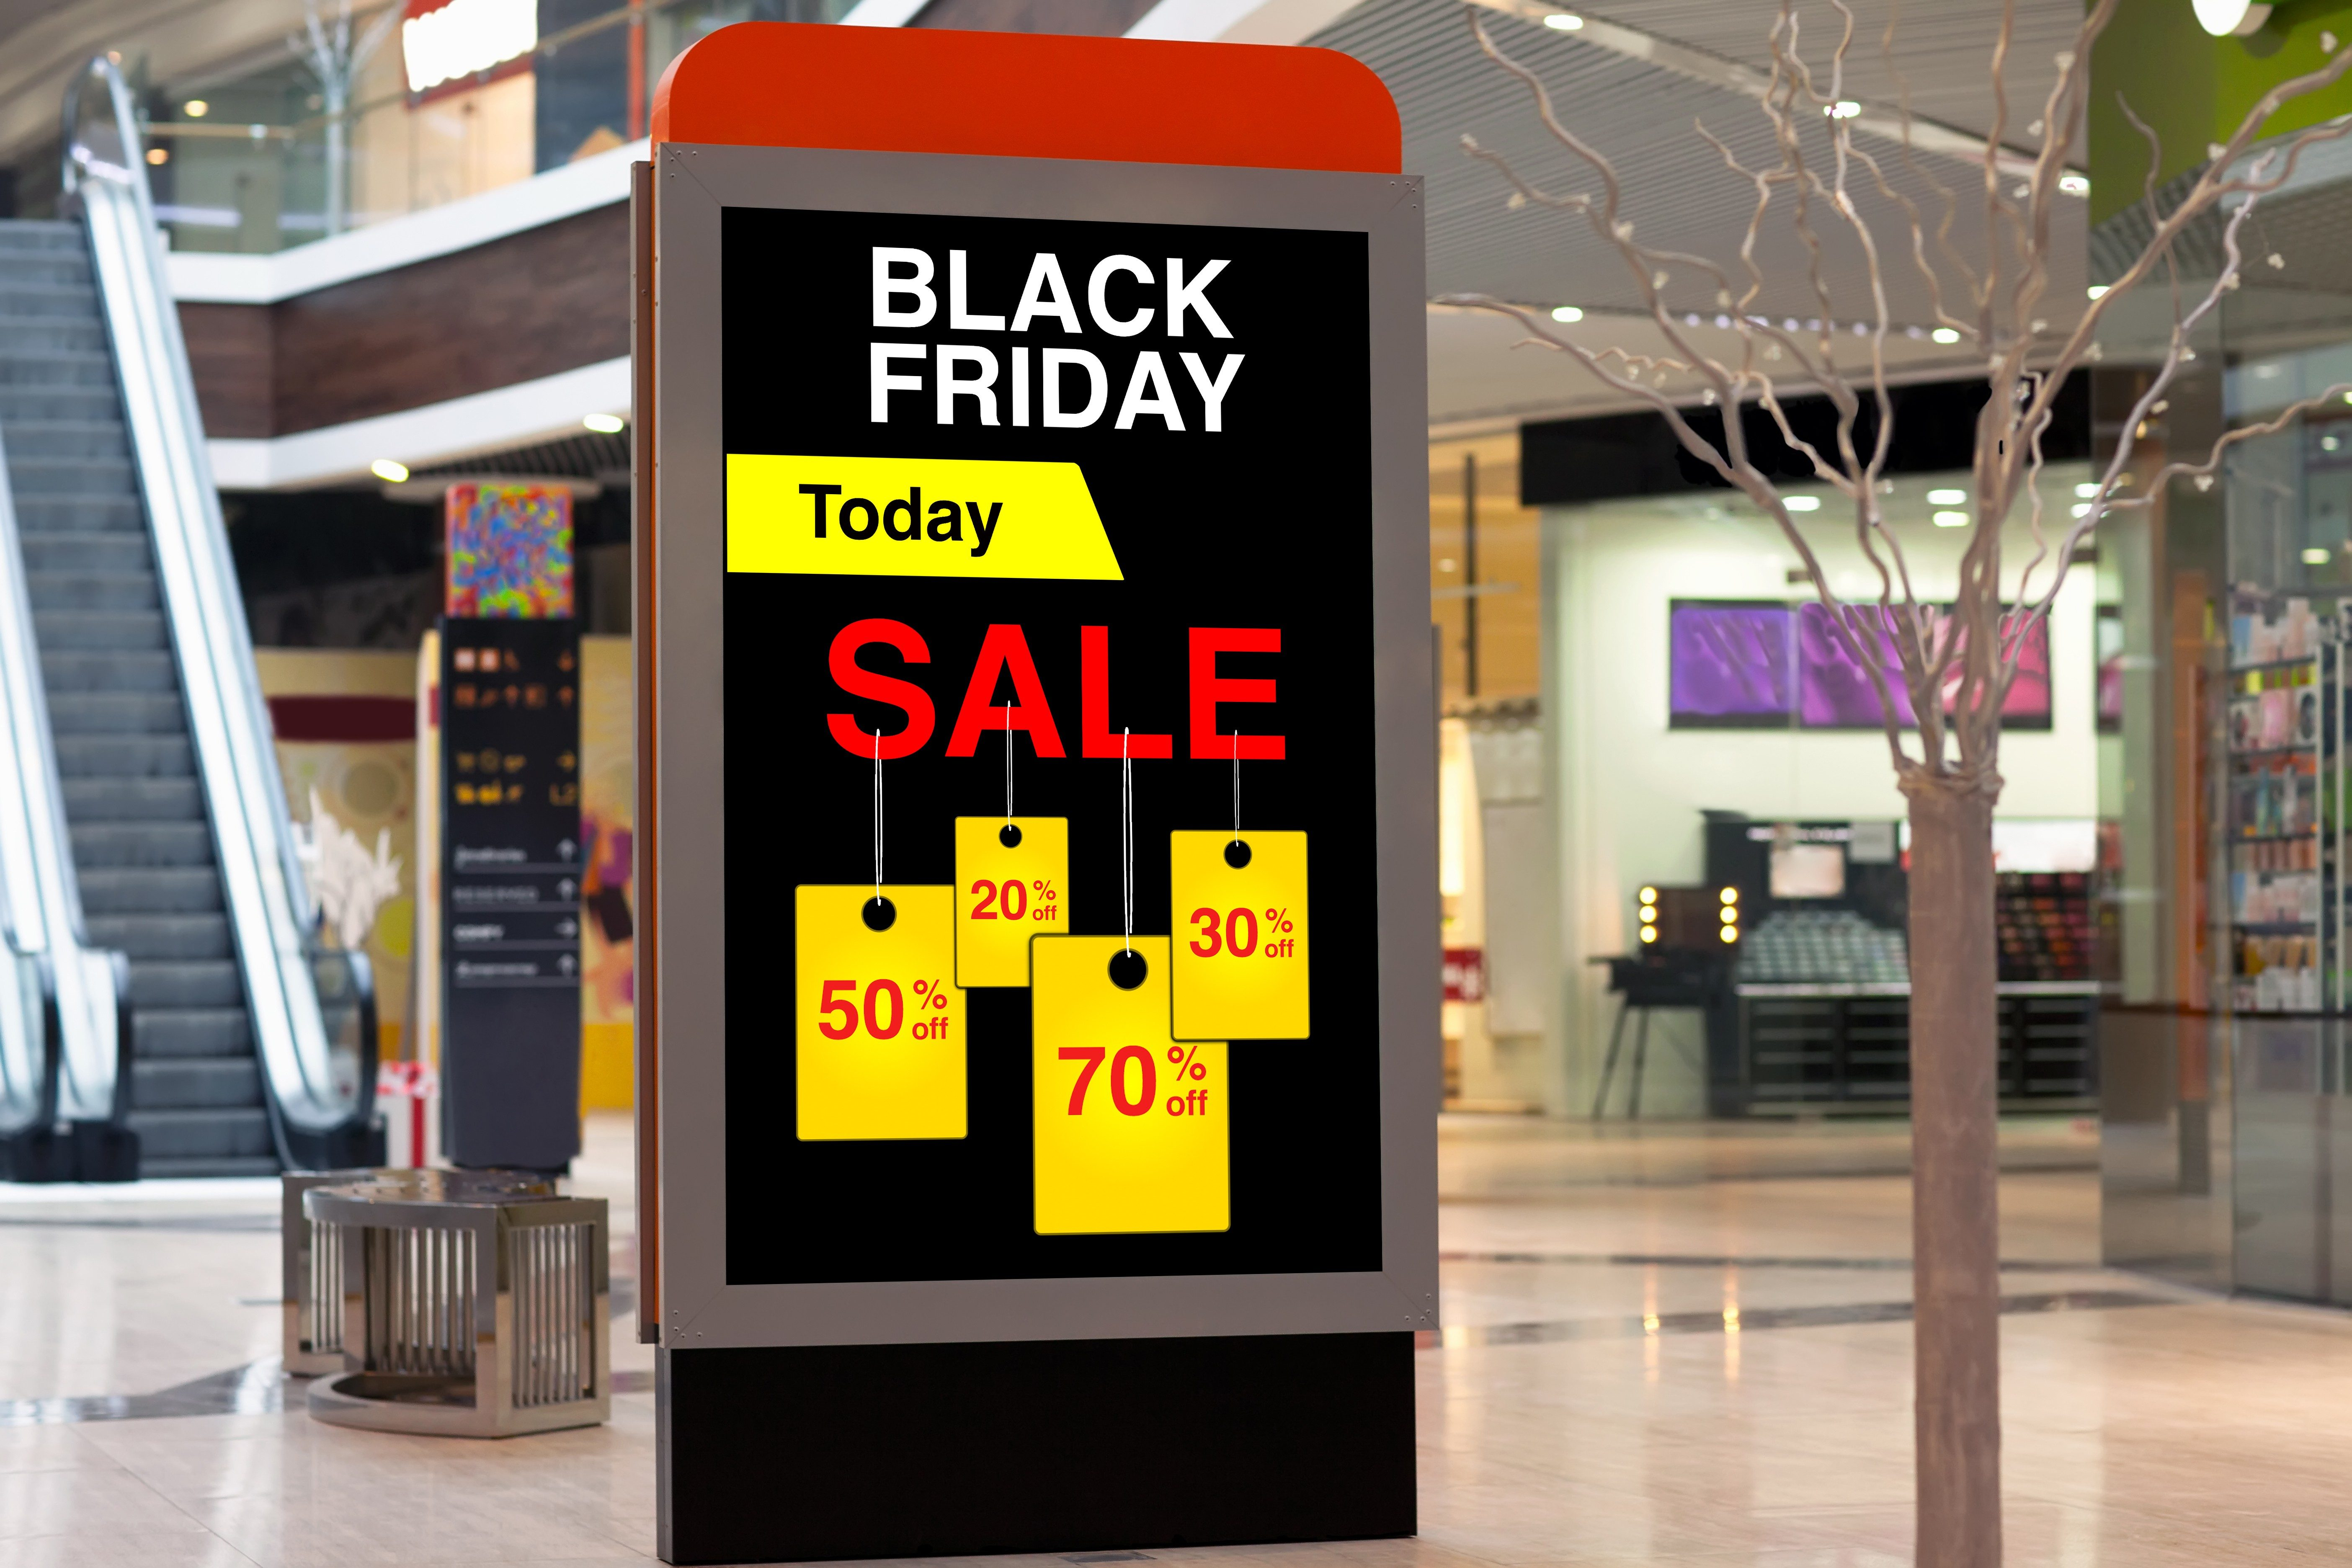 billboard advertising Black Friday and discounts in the middle of large store